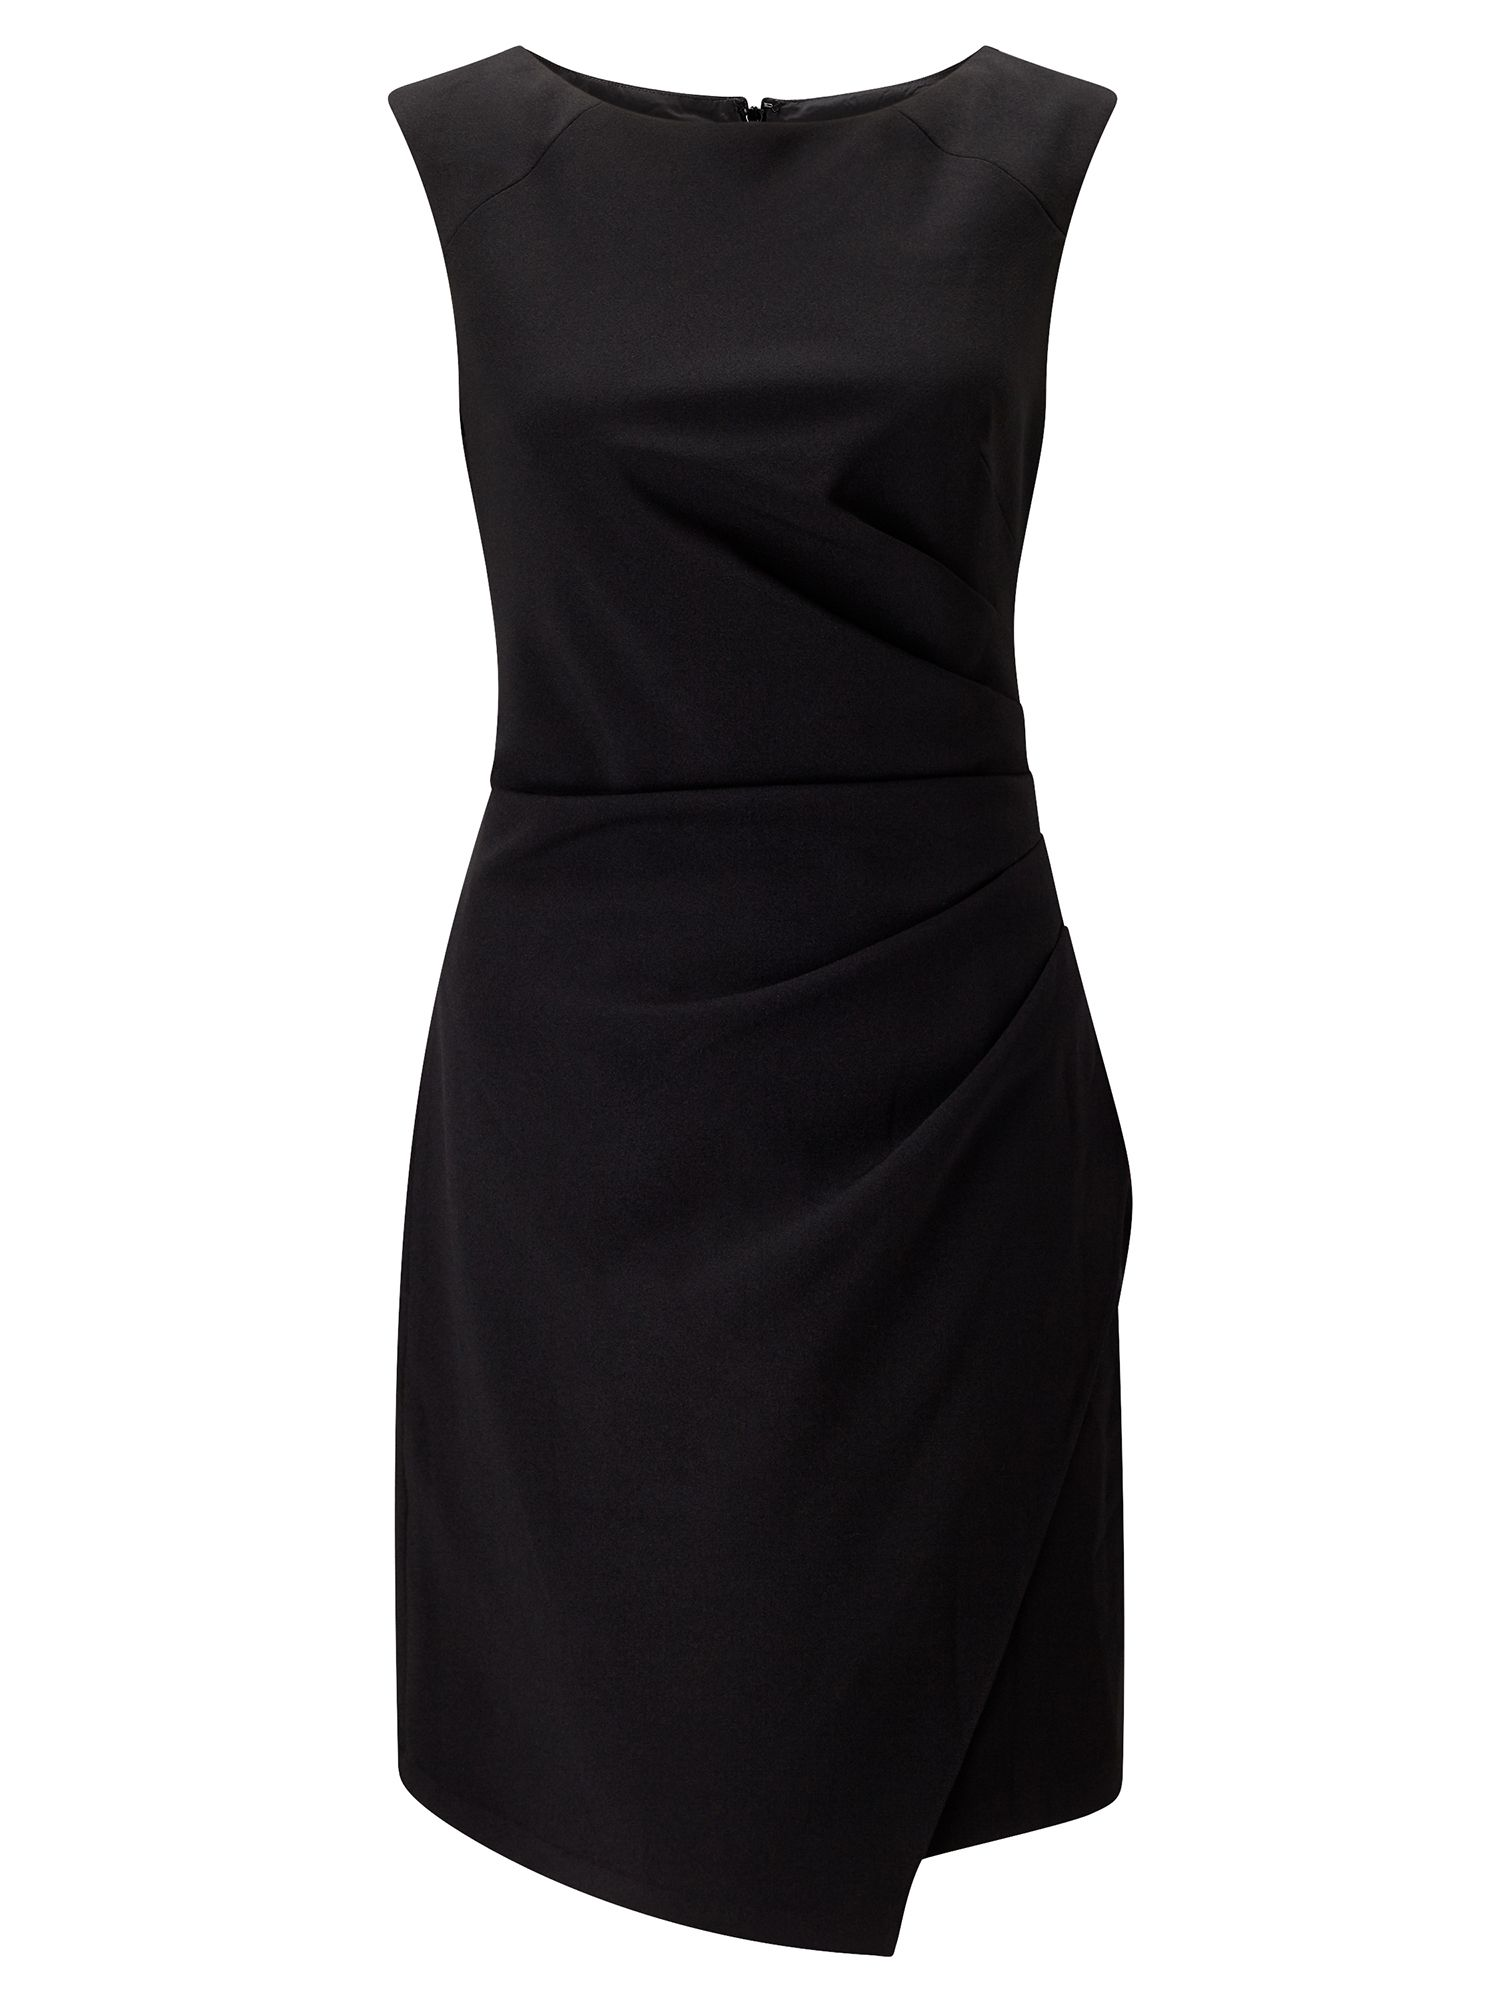 Adrianna Papell Asymmetric Sheath Dress Black